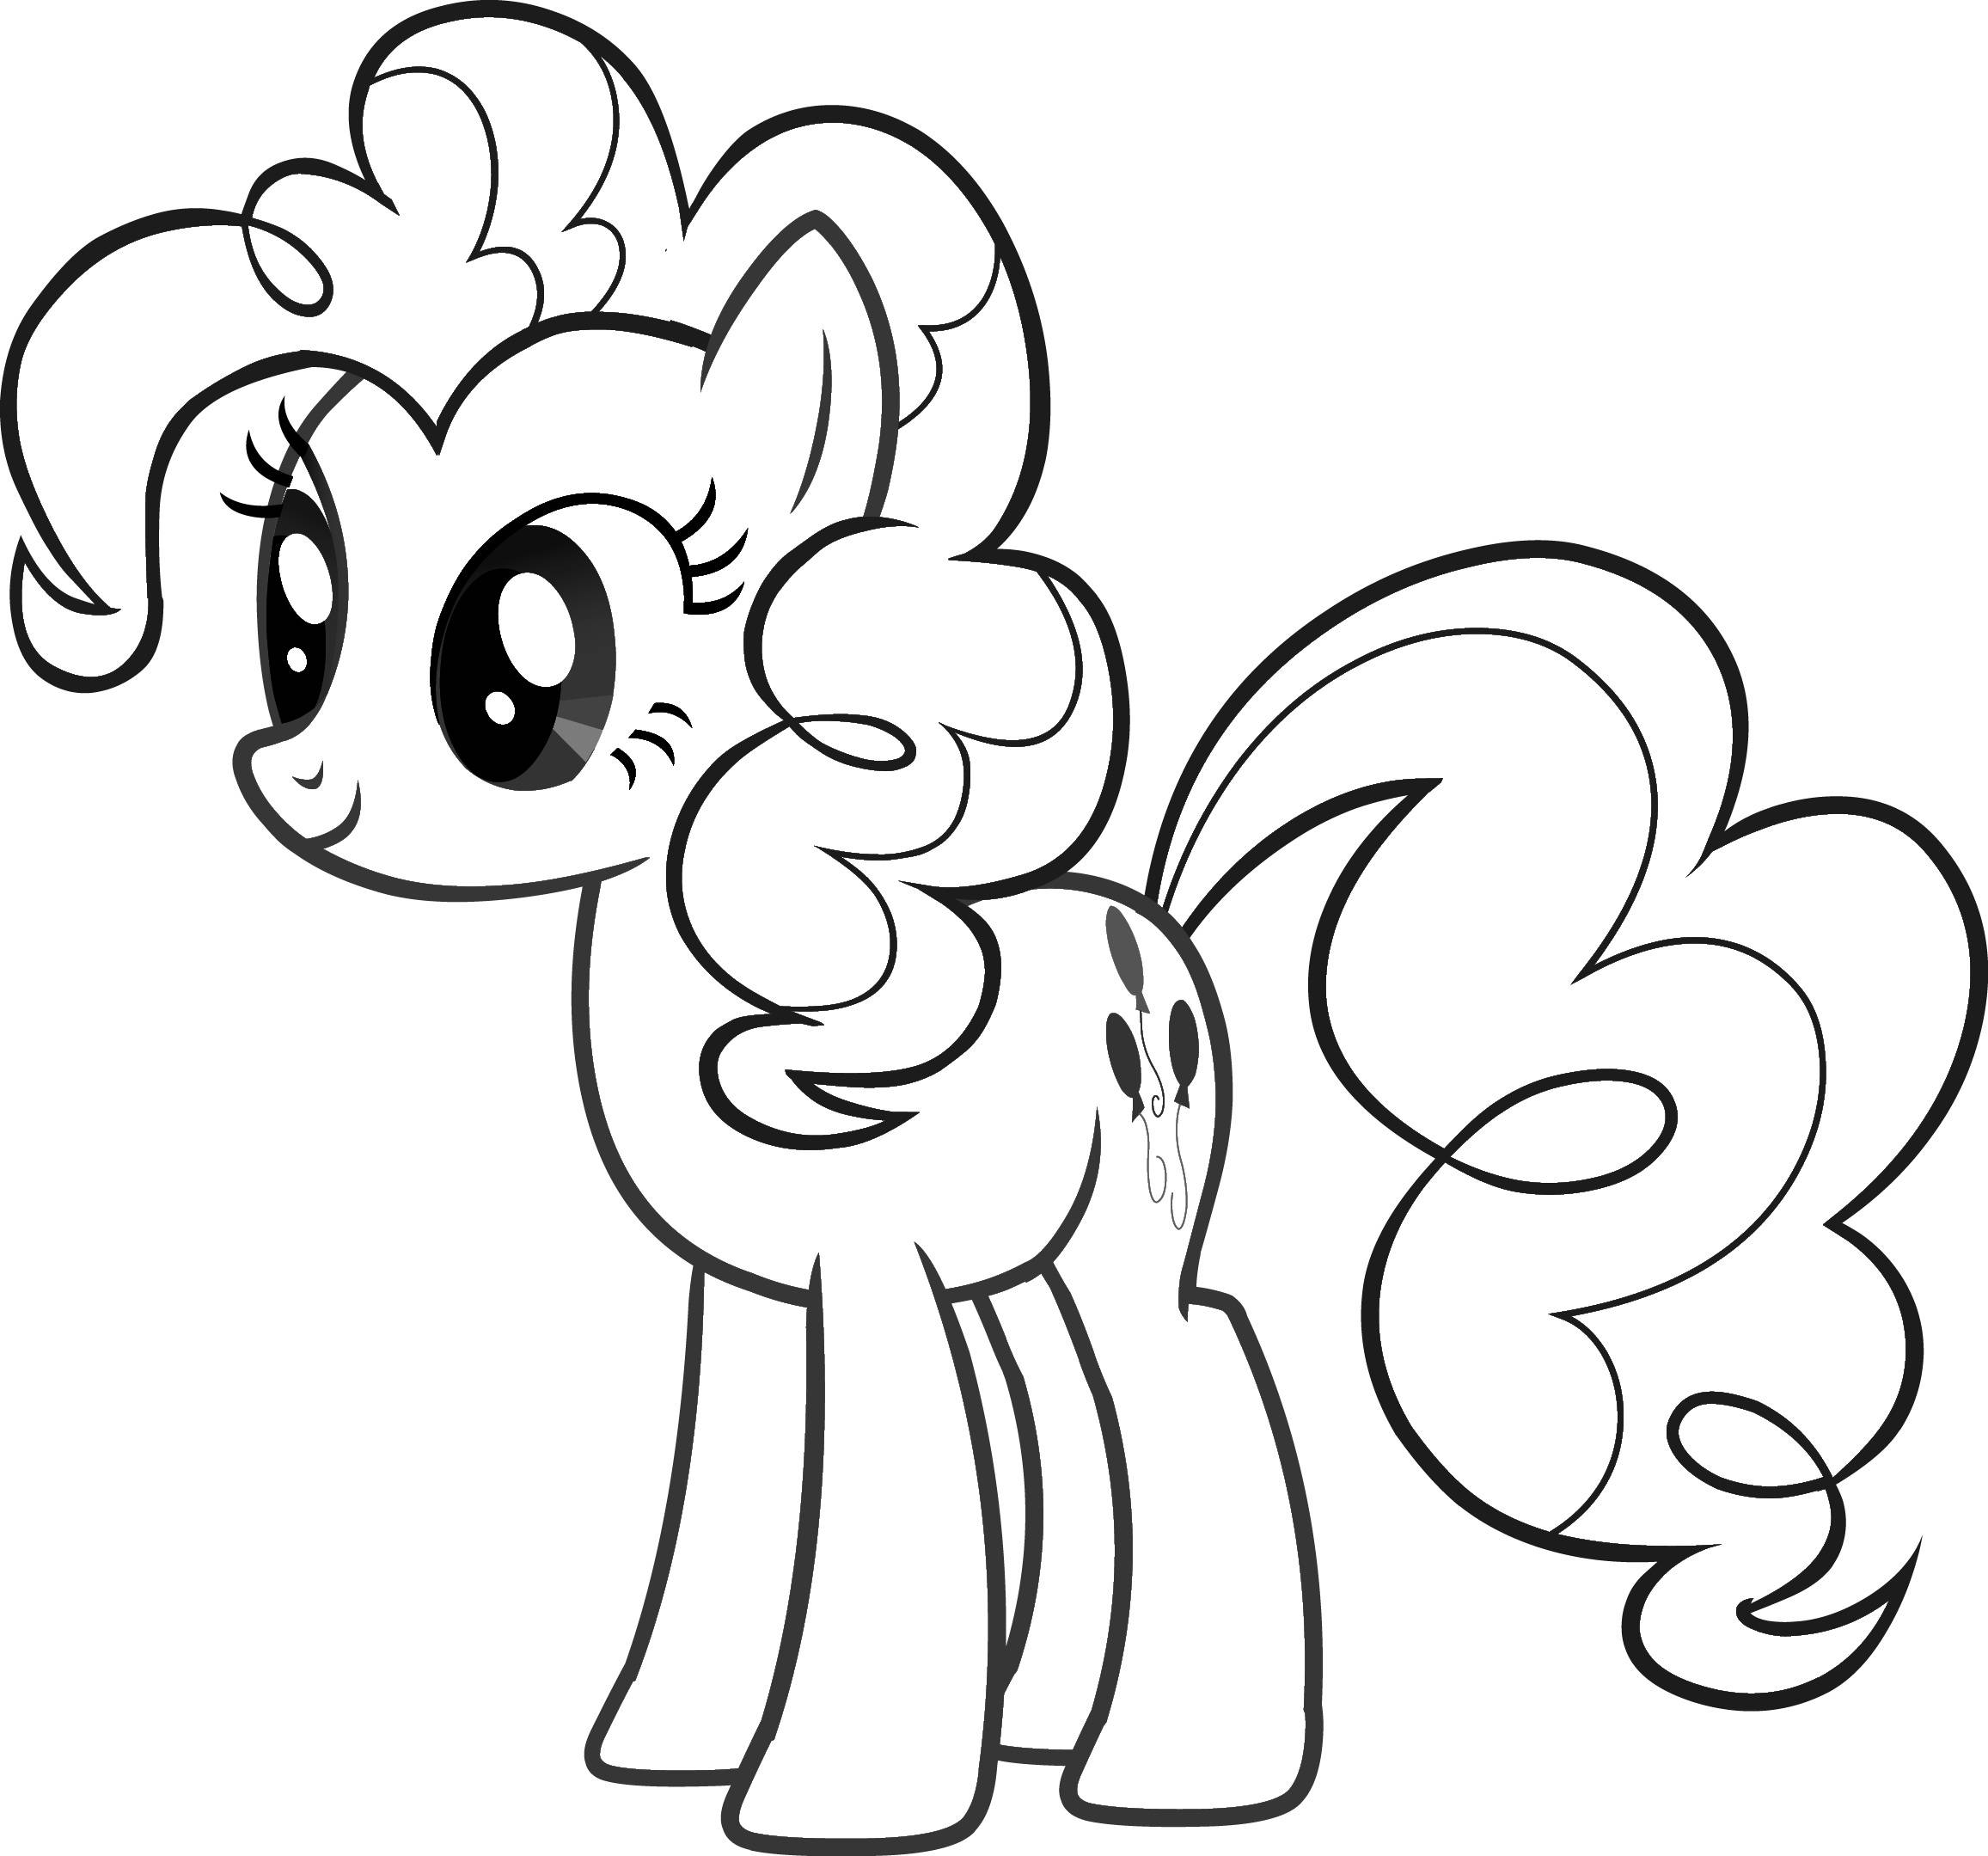 Picture for coloring printable - My Little Pony Coloring Pages